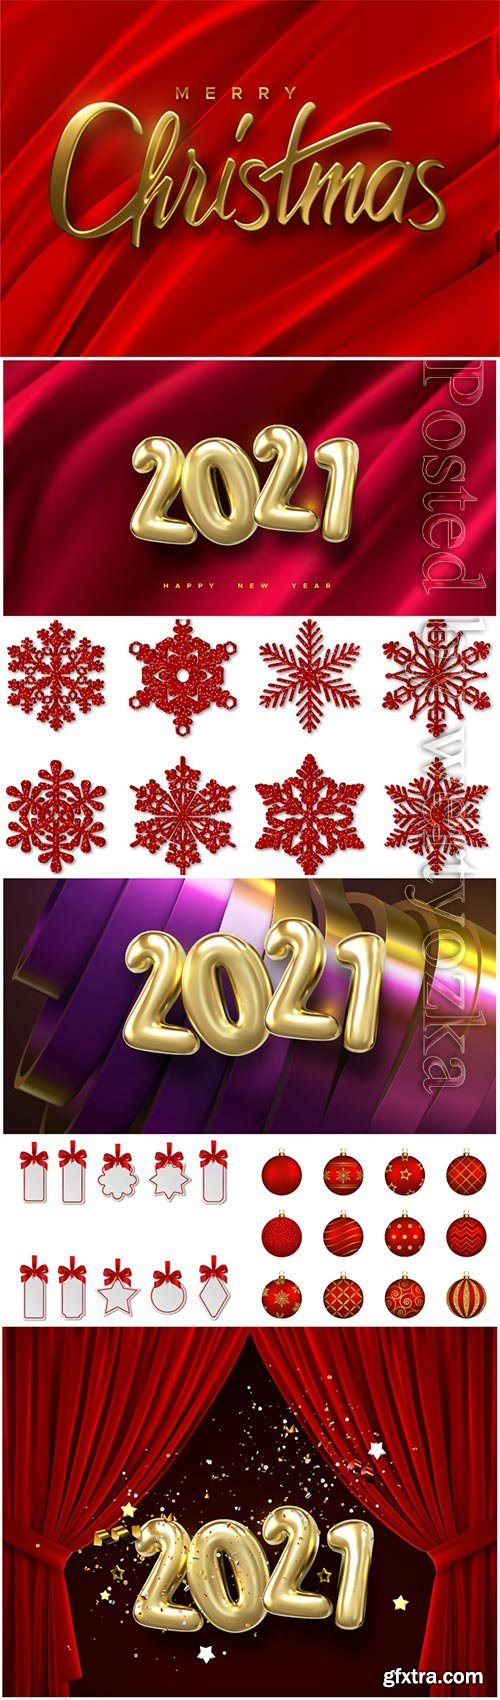 Happy new 2021 year numbers vector illustration